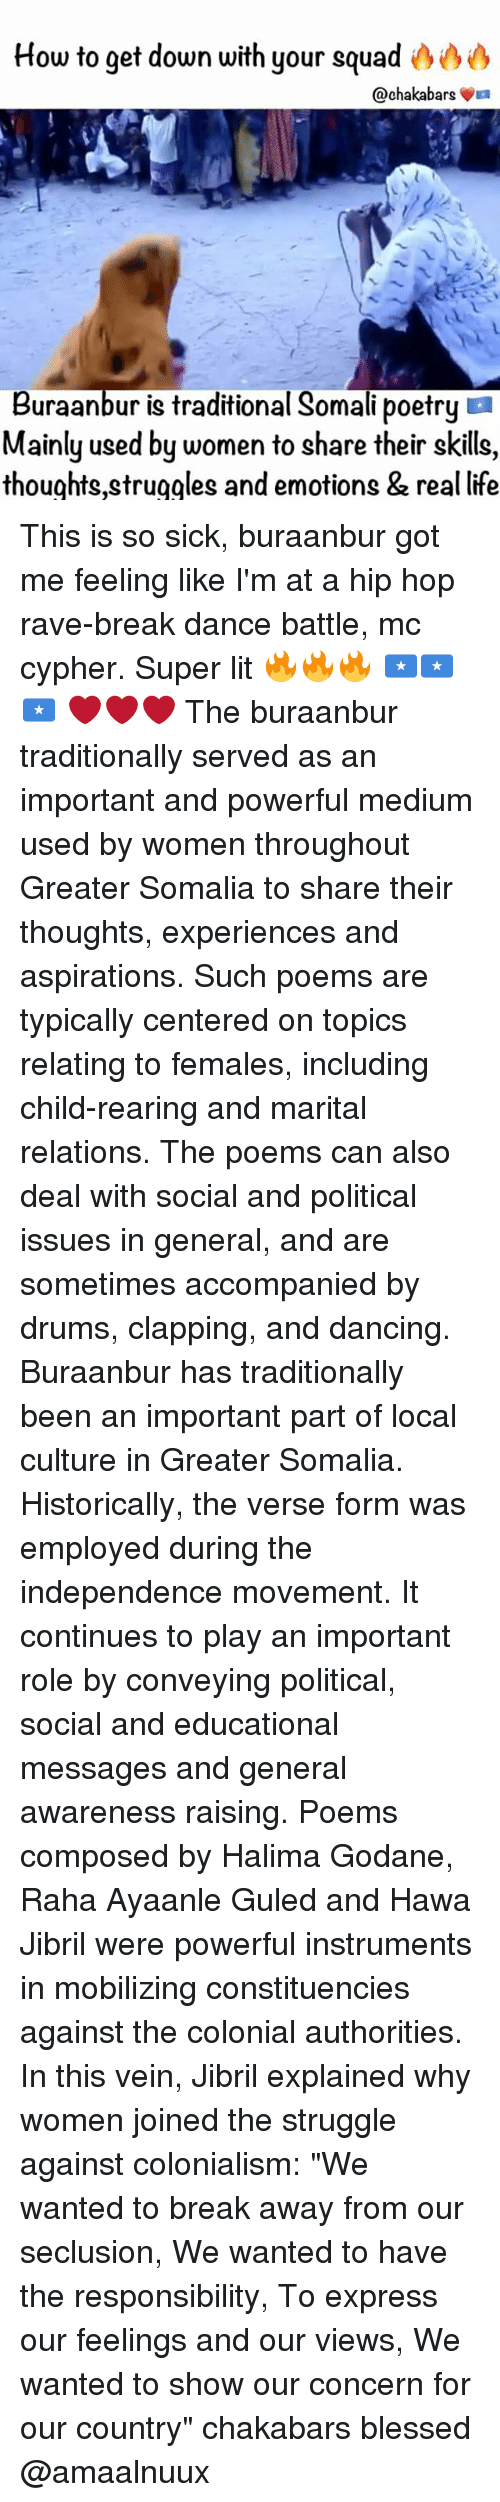 "Blessed, Cypher, and Dancing: How to get down with your squad  @chaka bars  La  Buraanbur is traditional Somali poetry  Mainly used by women to share their skills,  thoughts struggles and emotions & real life This is so sick, buraanbur got me feeling like I'm at a hip hop rave-break dance battle, mc cypher. Super lit 🔥🔥🔥 🇸🇴🇸🇴🇸🇴 ❤️❤️❤️ The buraanbur traditionally served as an important and powerful medium used by women throughout Greater Somalia to share their thoughts, experiences and aspirations. Such poems are typically centered on topics relating to females, including child-rearing and marital relations. The poems can also deal with social and political issues in general, and are sometimes accompanied by drums, clapping, and dancing. Buraanbur has traditionally been an important part of local culture in Greater Somalia. Historically, the verse form was employed during the independence movement. It continues to play an important role by conveying political, social and educational messages and general awareness raising. Poems composed by Halima Godane, Raha Ayaanle Guled and Hawa Jibril were powerful instruments in mobilizing constituencies against the colonial authorities. In this vein, Jibril explained why women joined the struggle against colonialism: ""We wanted to break away from our seclusion, We wanted to have the responsibility, To express our feelings and our views, We wanted to show our concern for our country"" chakabars blessed @amaalnuux"